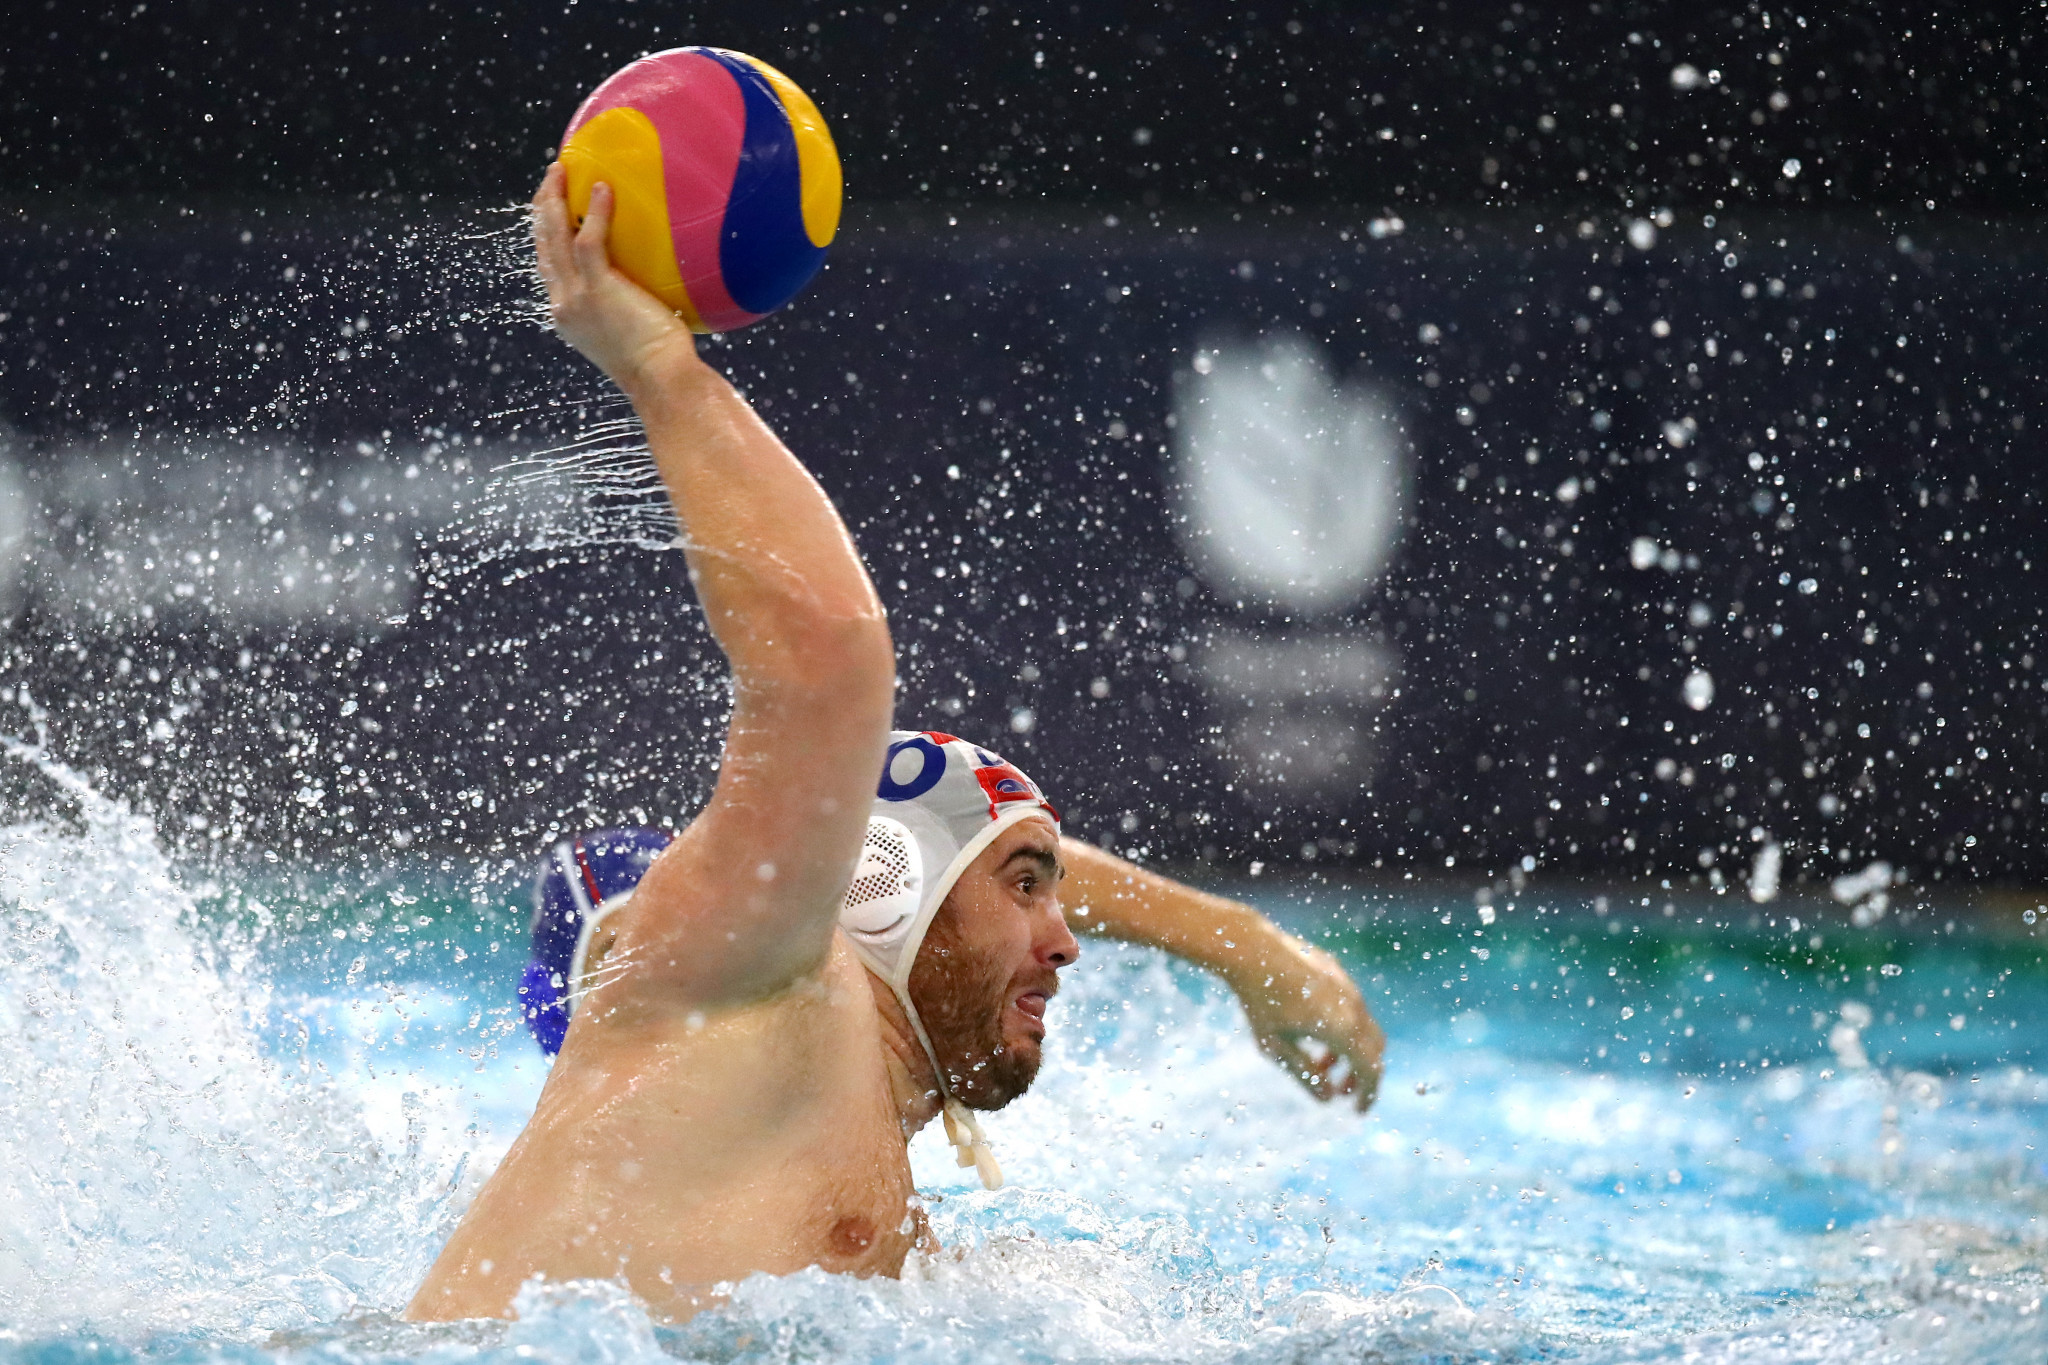 Josip Vrlic scored the crucial penalty for Croatia to secure their place at Tokyo 2020 ©Getty Images